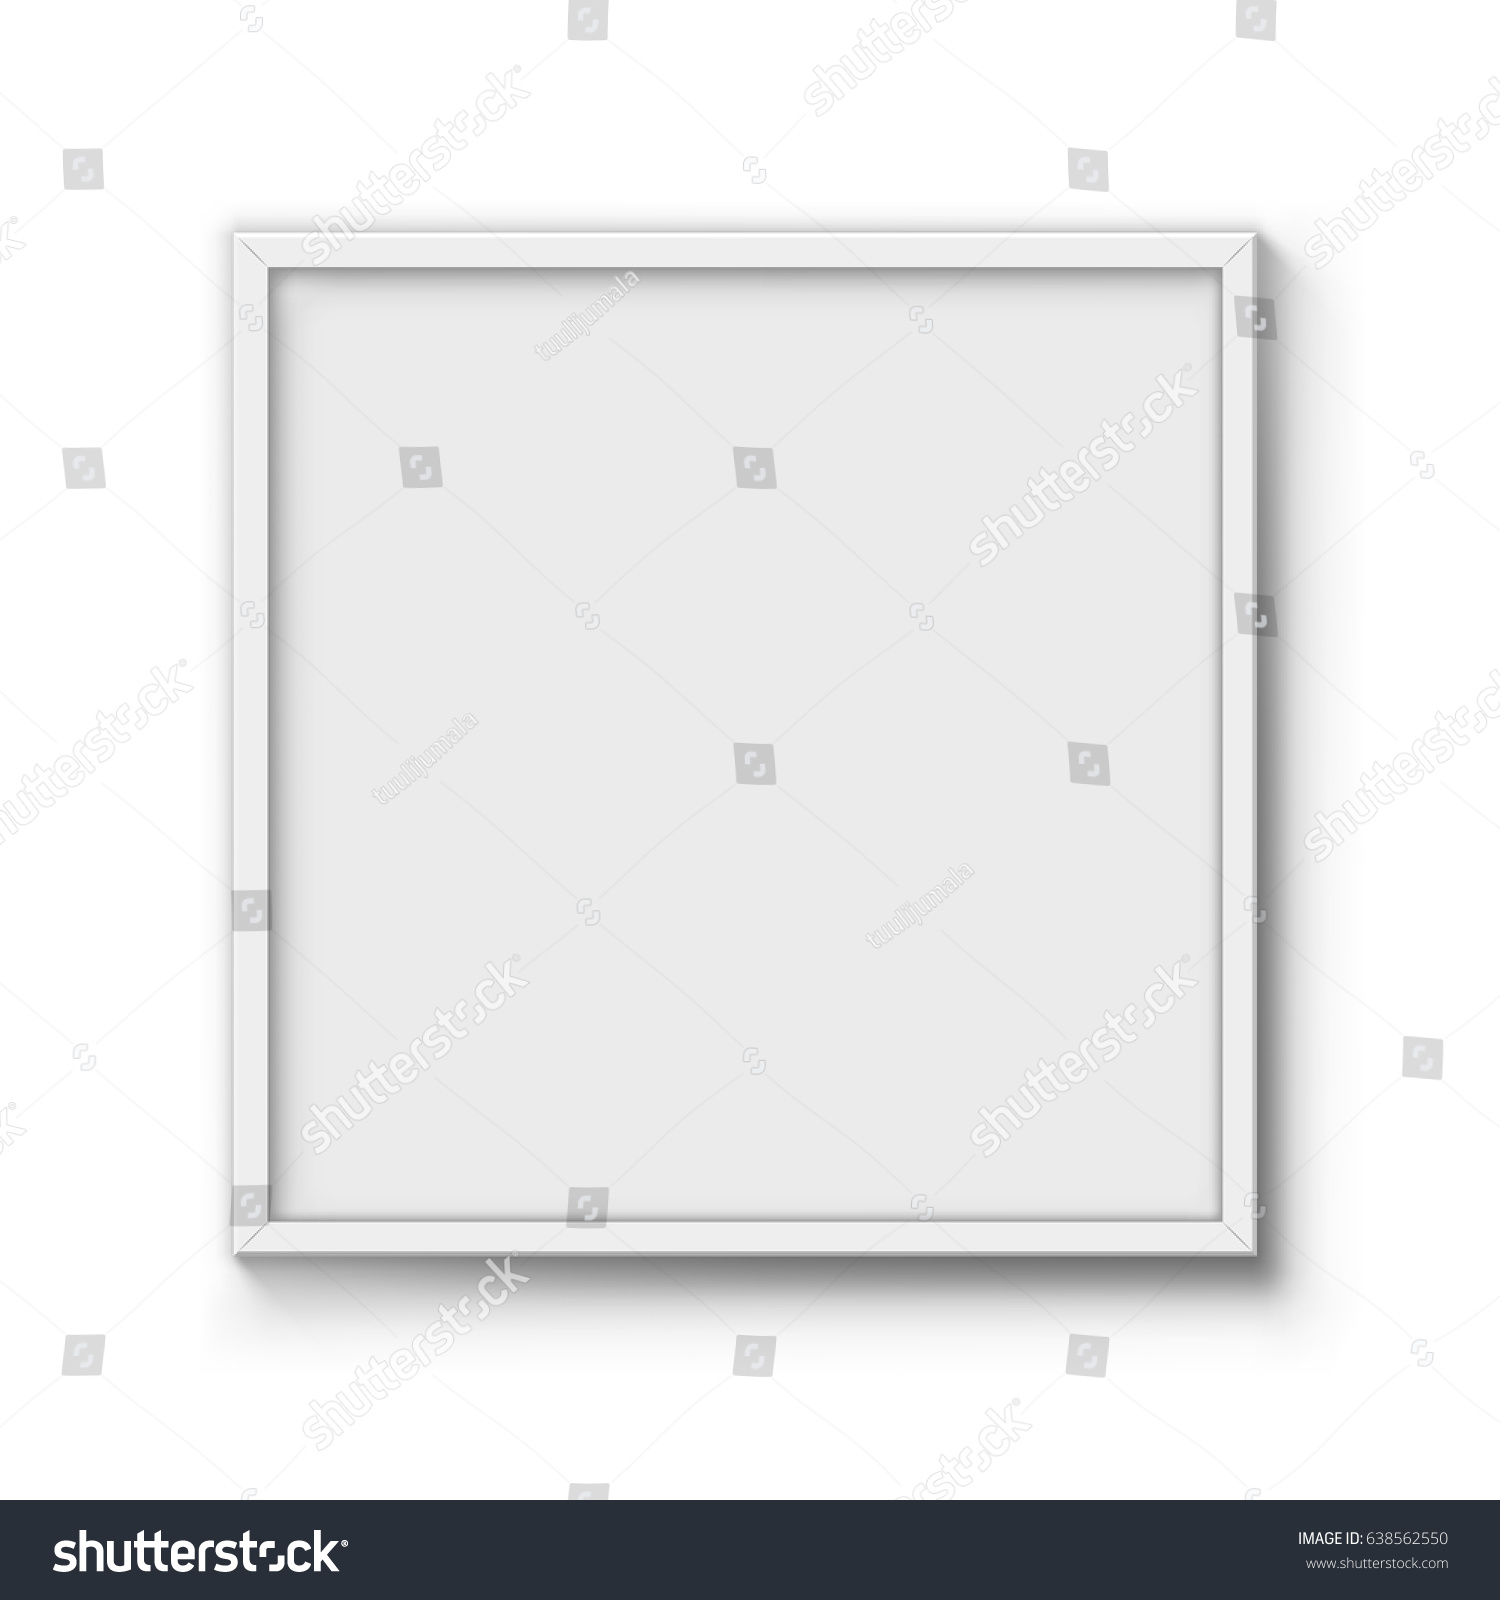 Blank Poster Frame Vector Template Wall Stock Vector (Royalty Free ...